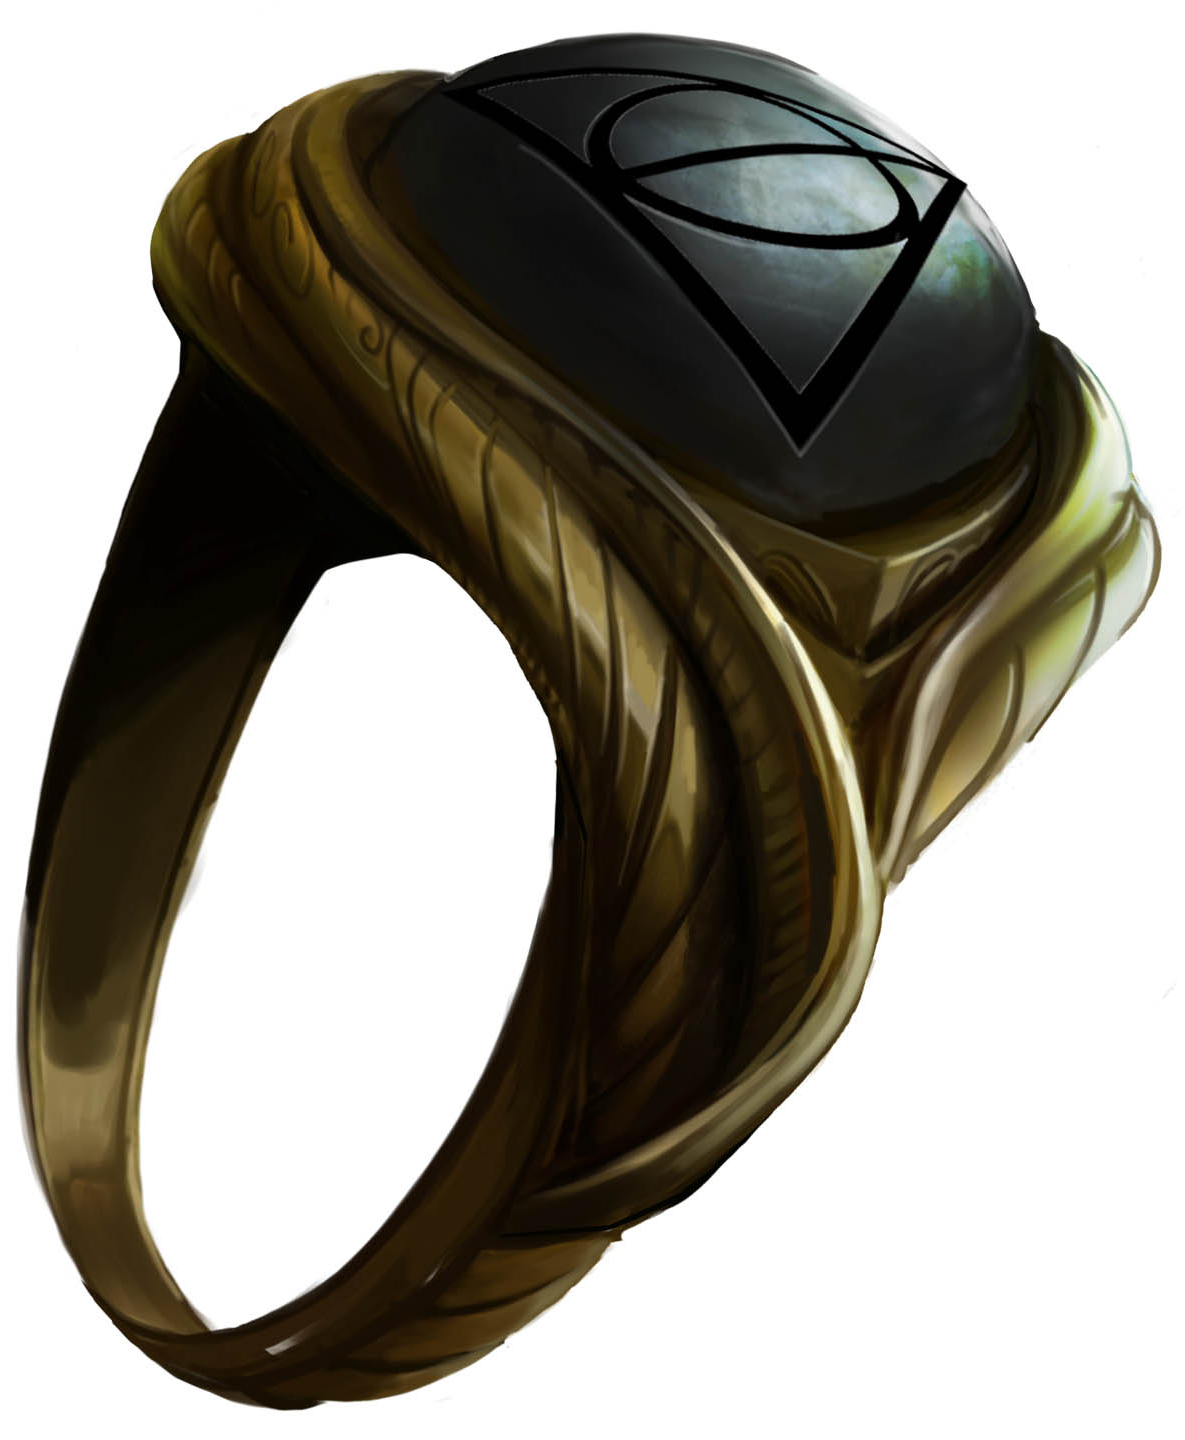 Marvolo Gaunt's Ring | Harry Potter Wiki | FANDOM powered by